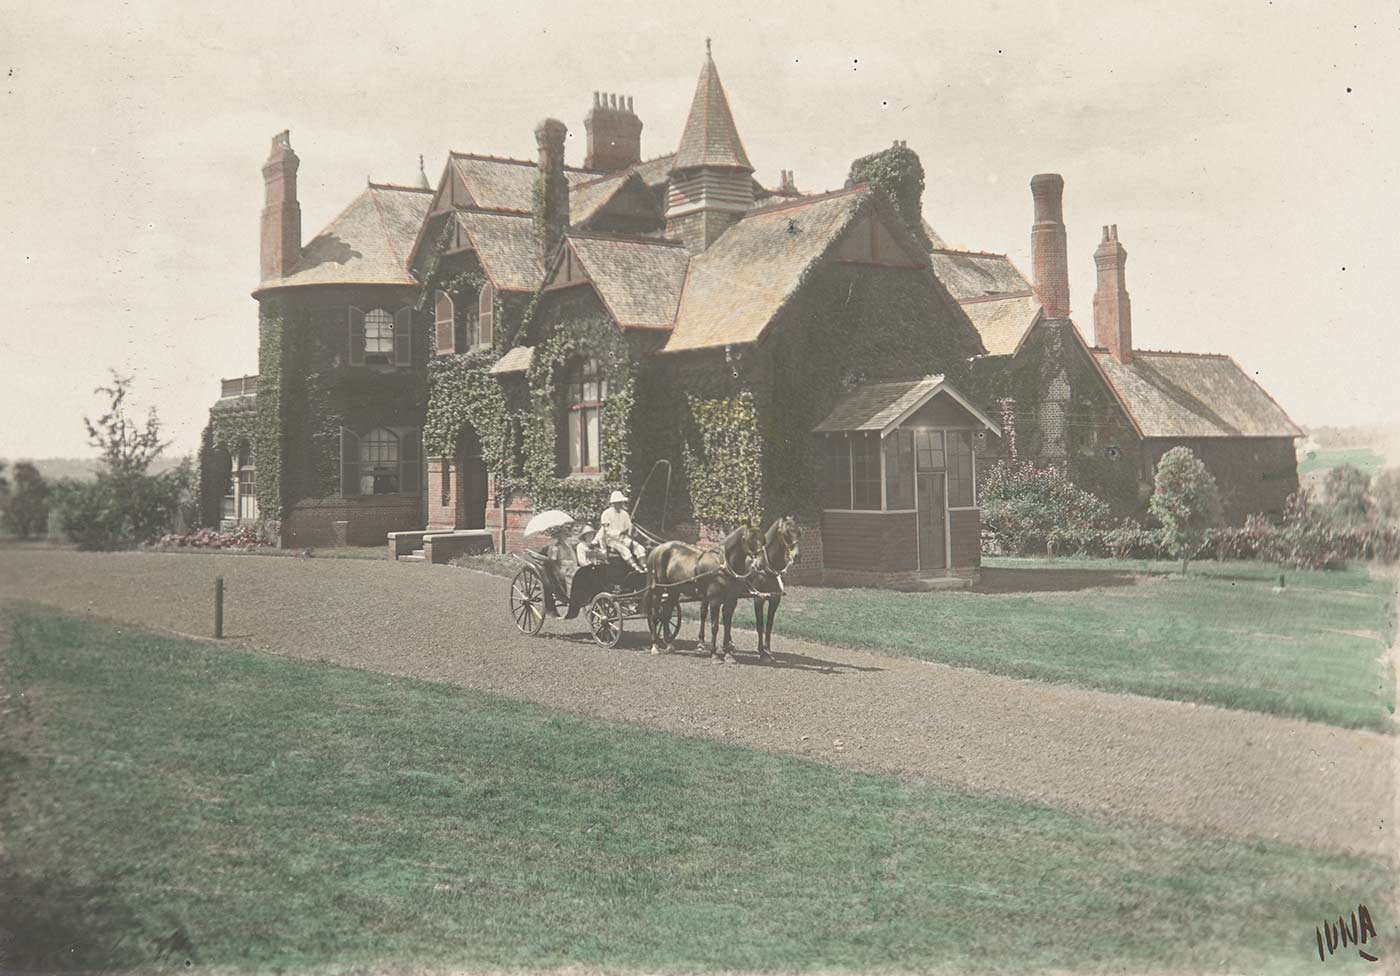 Carriage pulled by two horses on a path in front of a country house. - click to view larger image